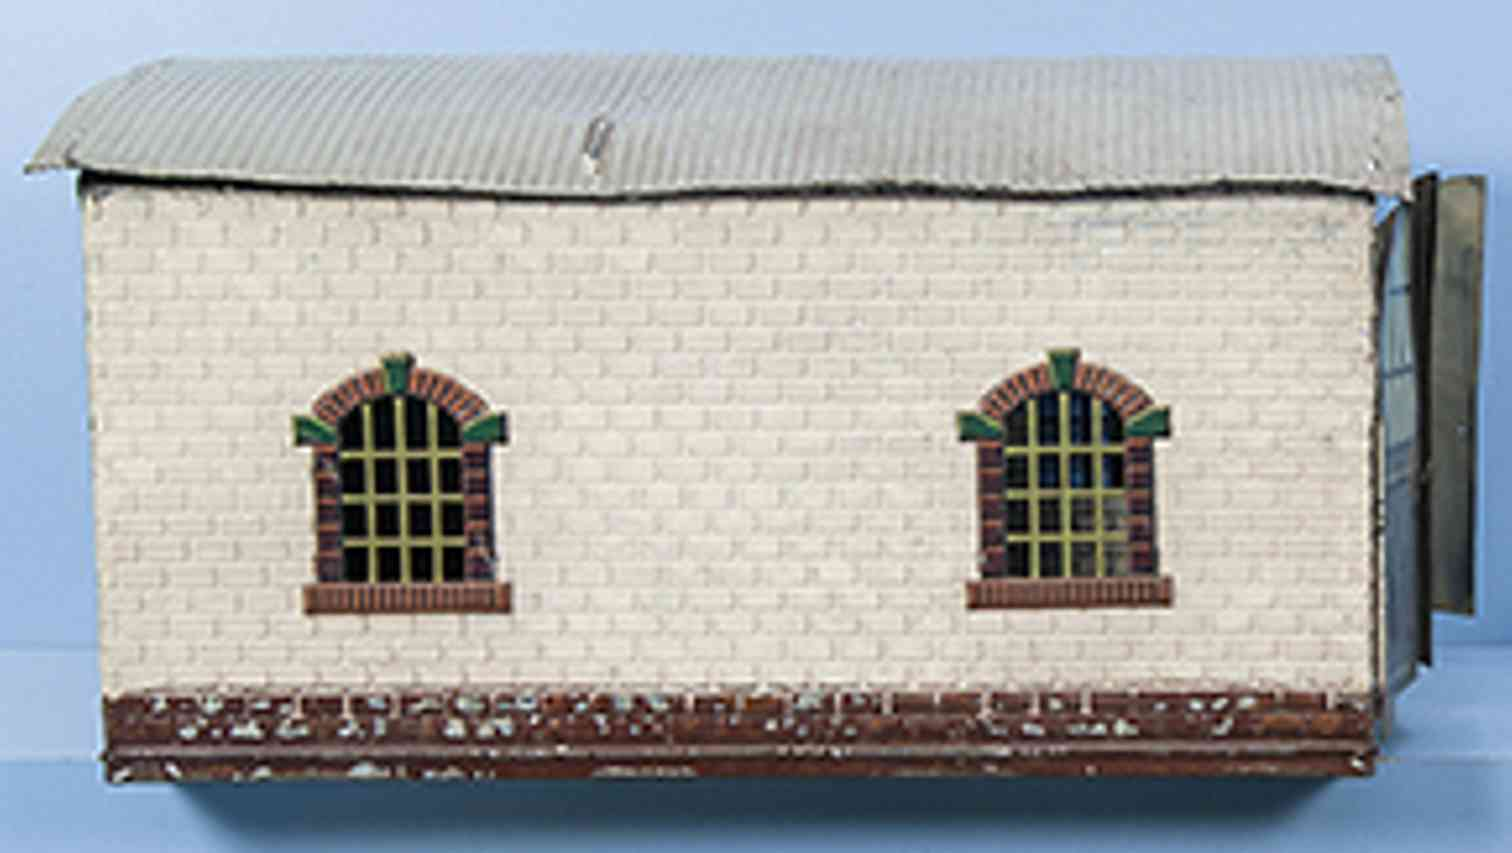 bing  6167/1 railway toy 2-place locomotive shed gauge 1